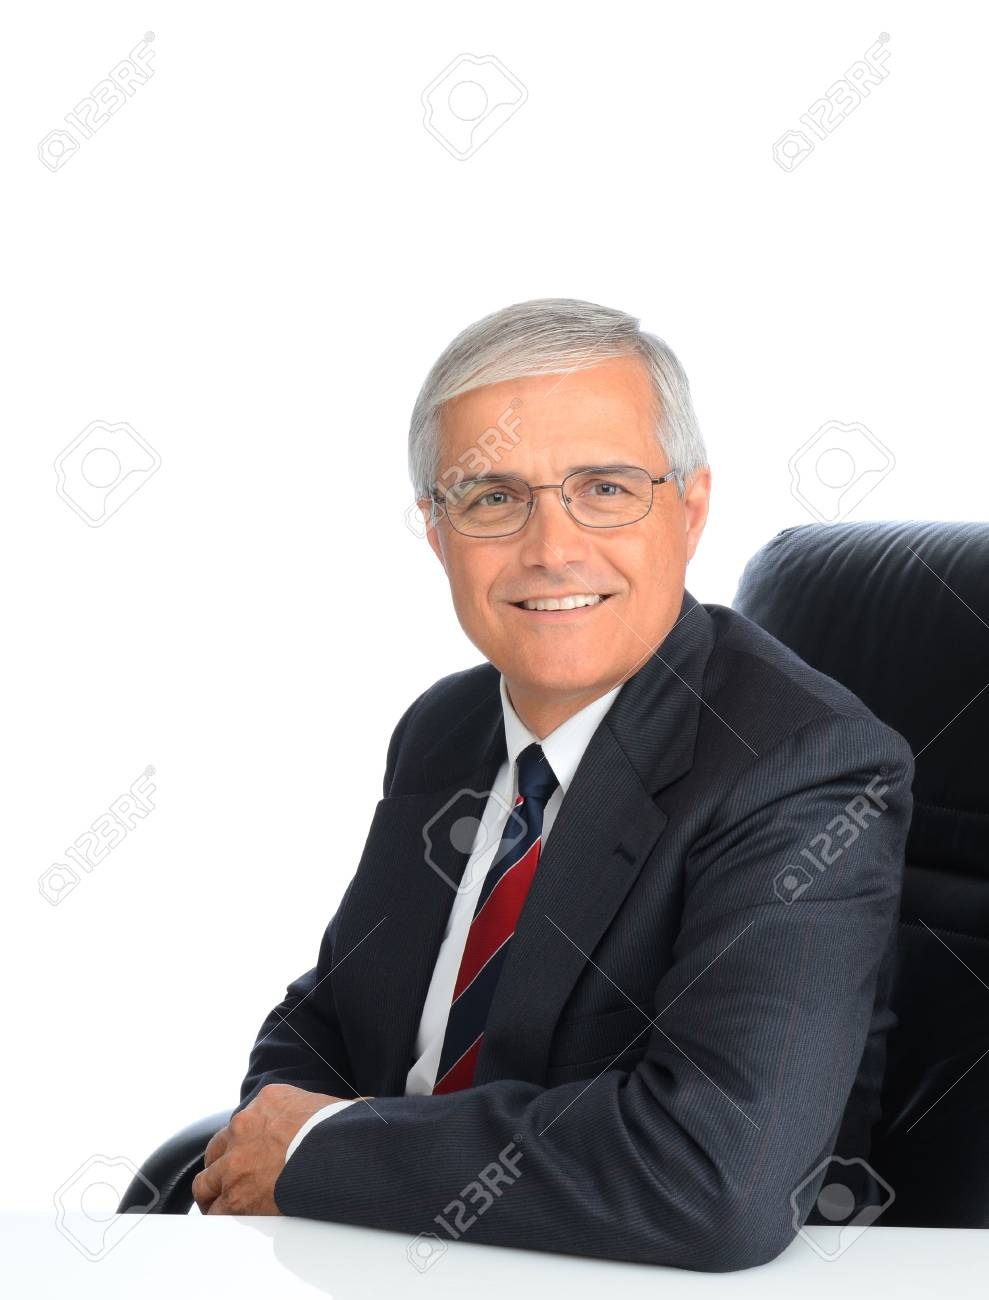 Portrait of a seated mature businessman. Man is smiling and wearing eyeglasses, over a white background. Stock Photo - 13467405